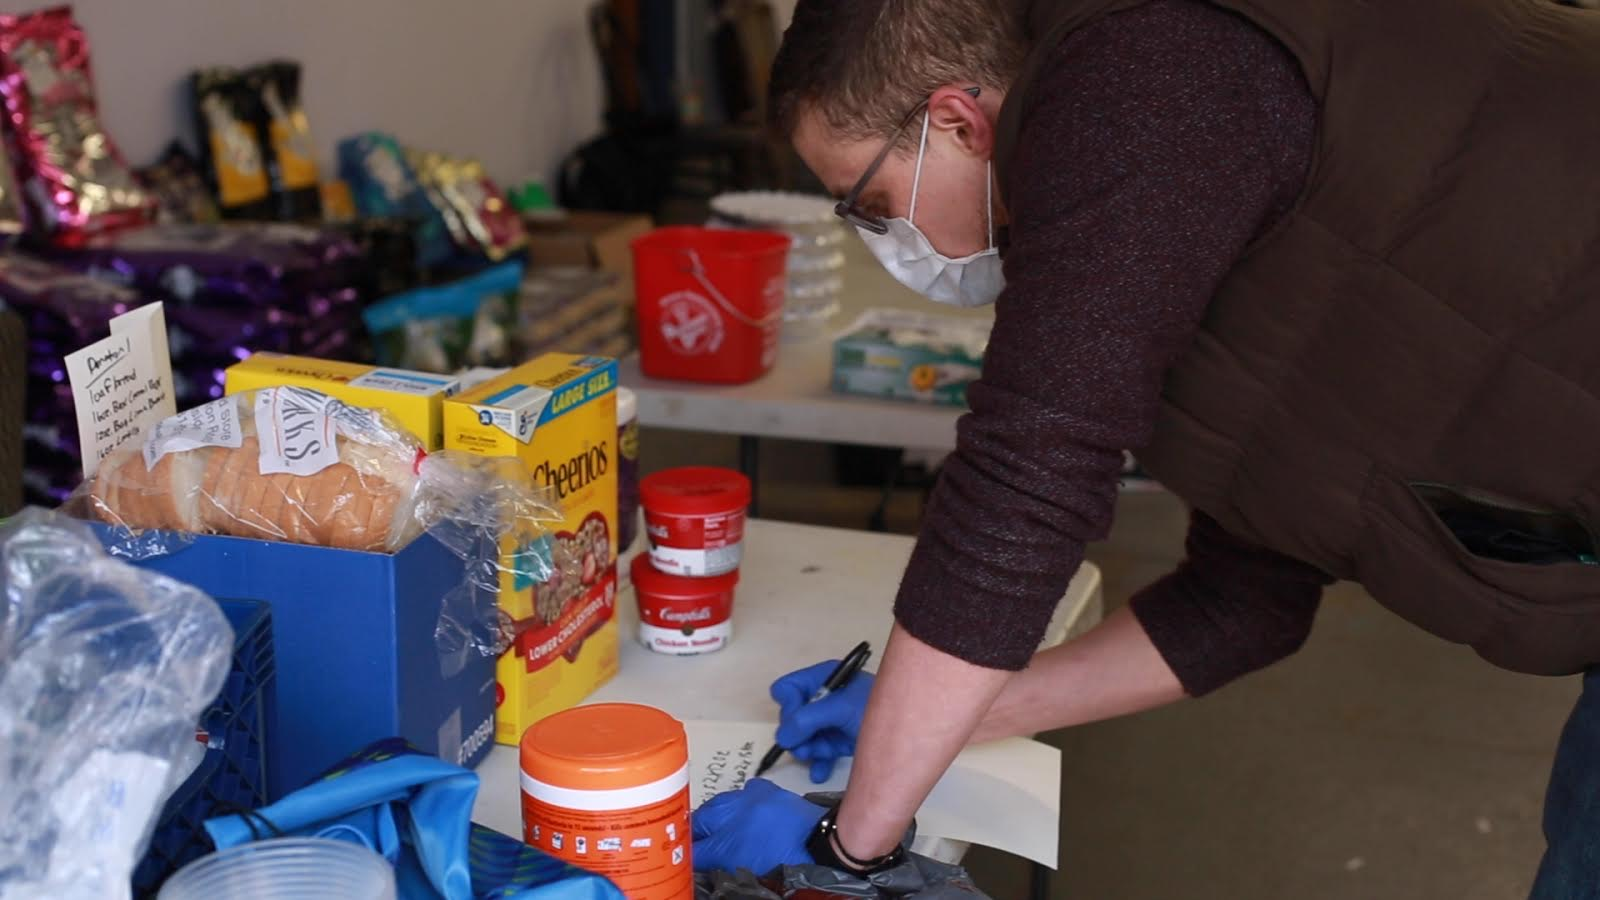 A volunteer assembles a grocery care package for workers in need.